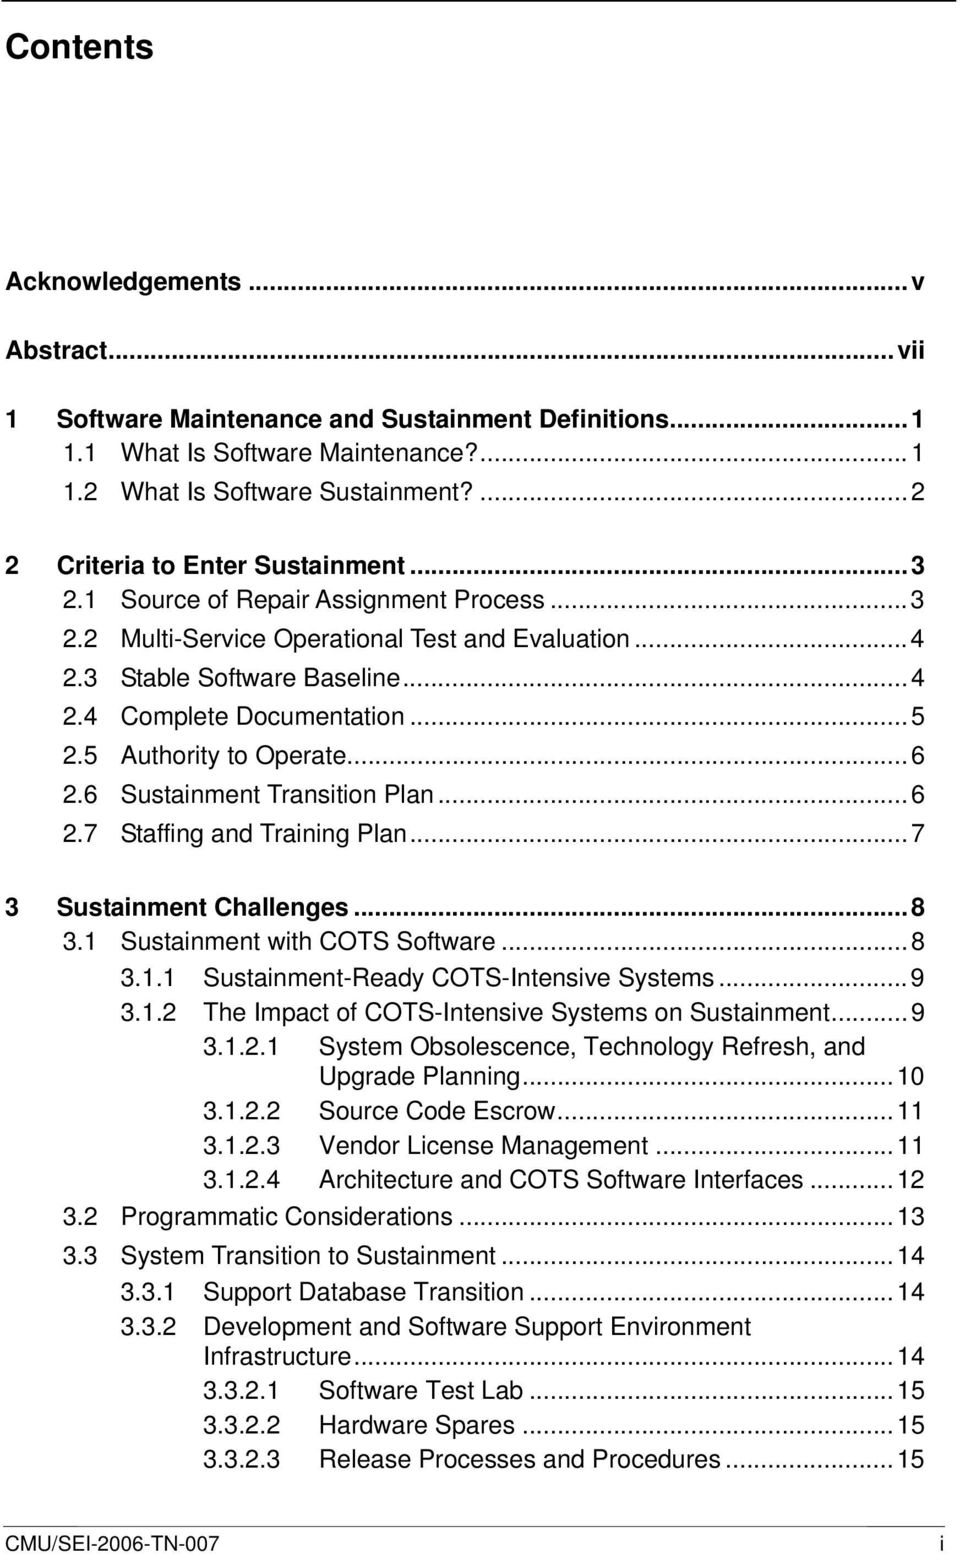 ..5 2.5 Authority to Operate...6 2.6 Sustainment Transition Plan...6 2.7 Staffing and Training Plan...7 3 Sustainment Challenges...8 3.1 Sustainment with COTS Software...8 3.1.1 Sustainment-Ready COTS-Intensive Systems.